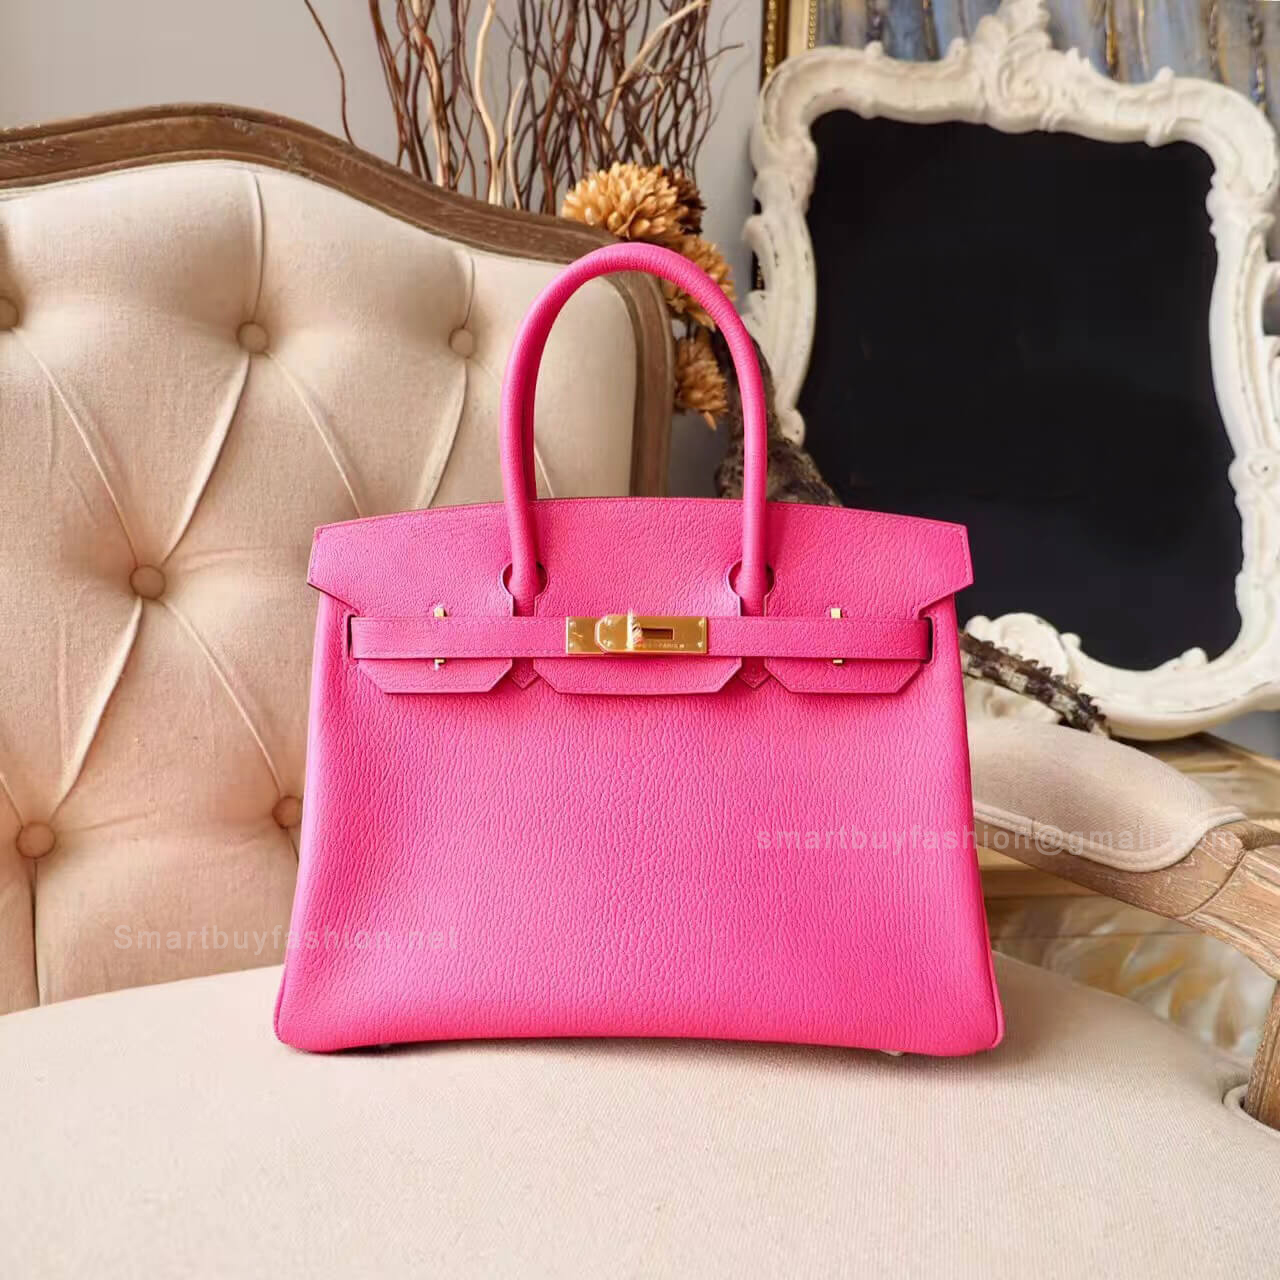 Hermes Birkin 30 Handbag in Bicolored 5r Rose Shocking Chevre Myzore GHW